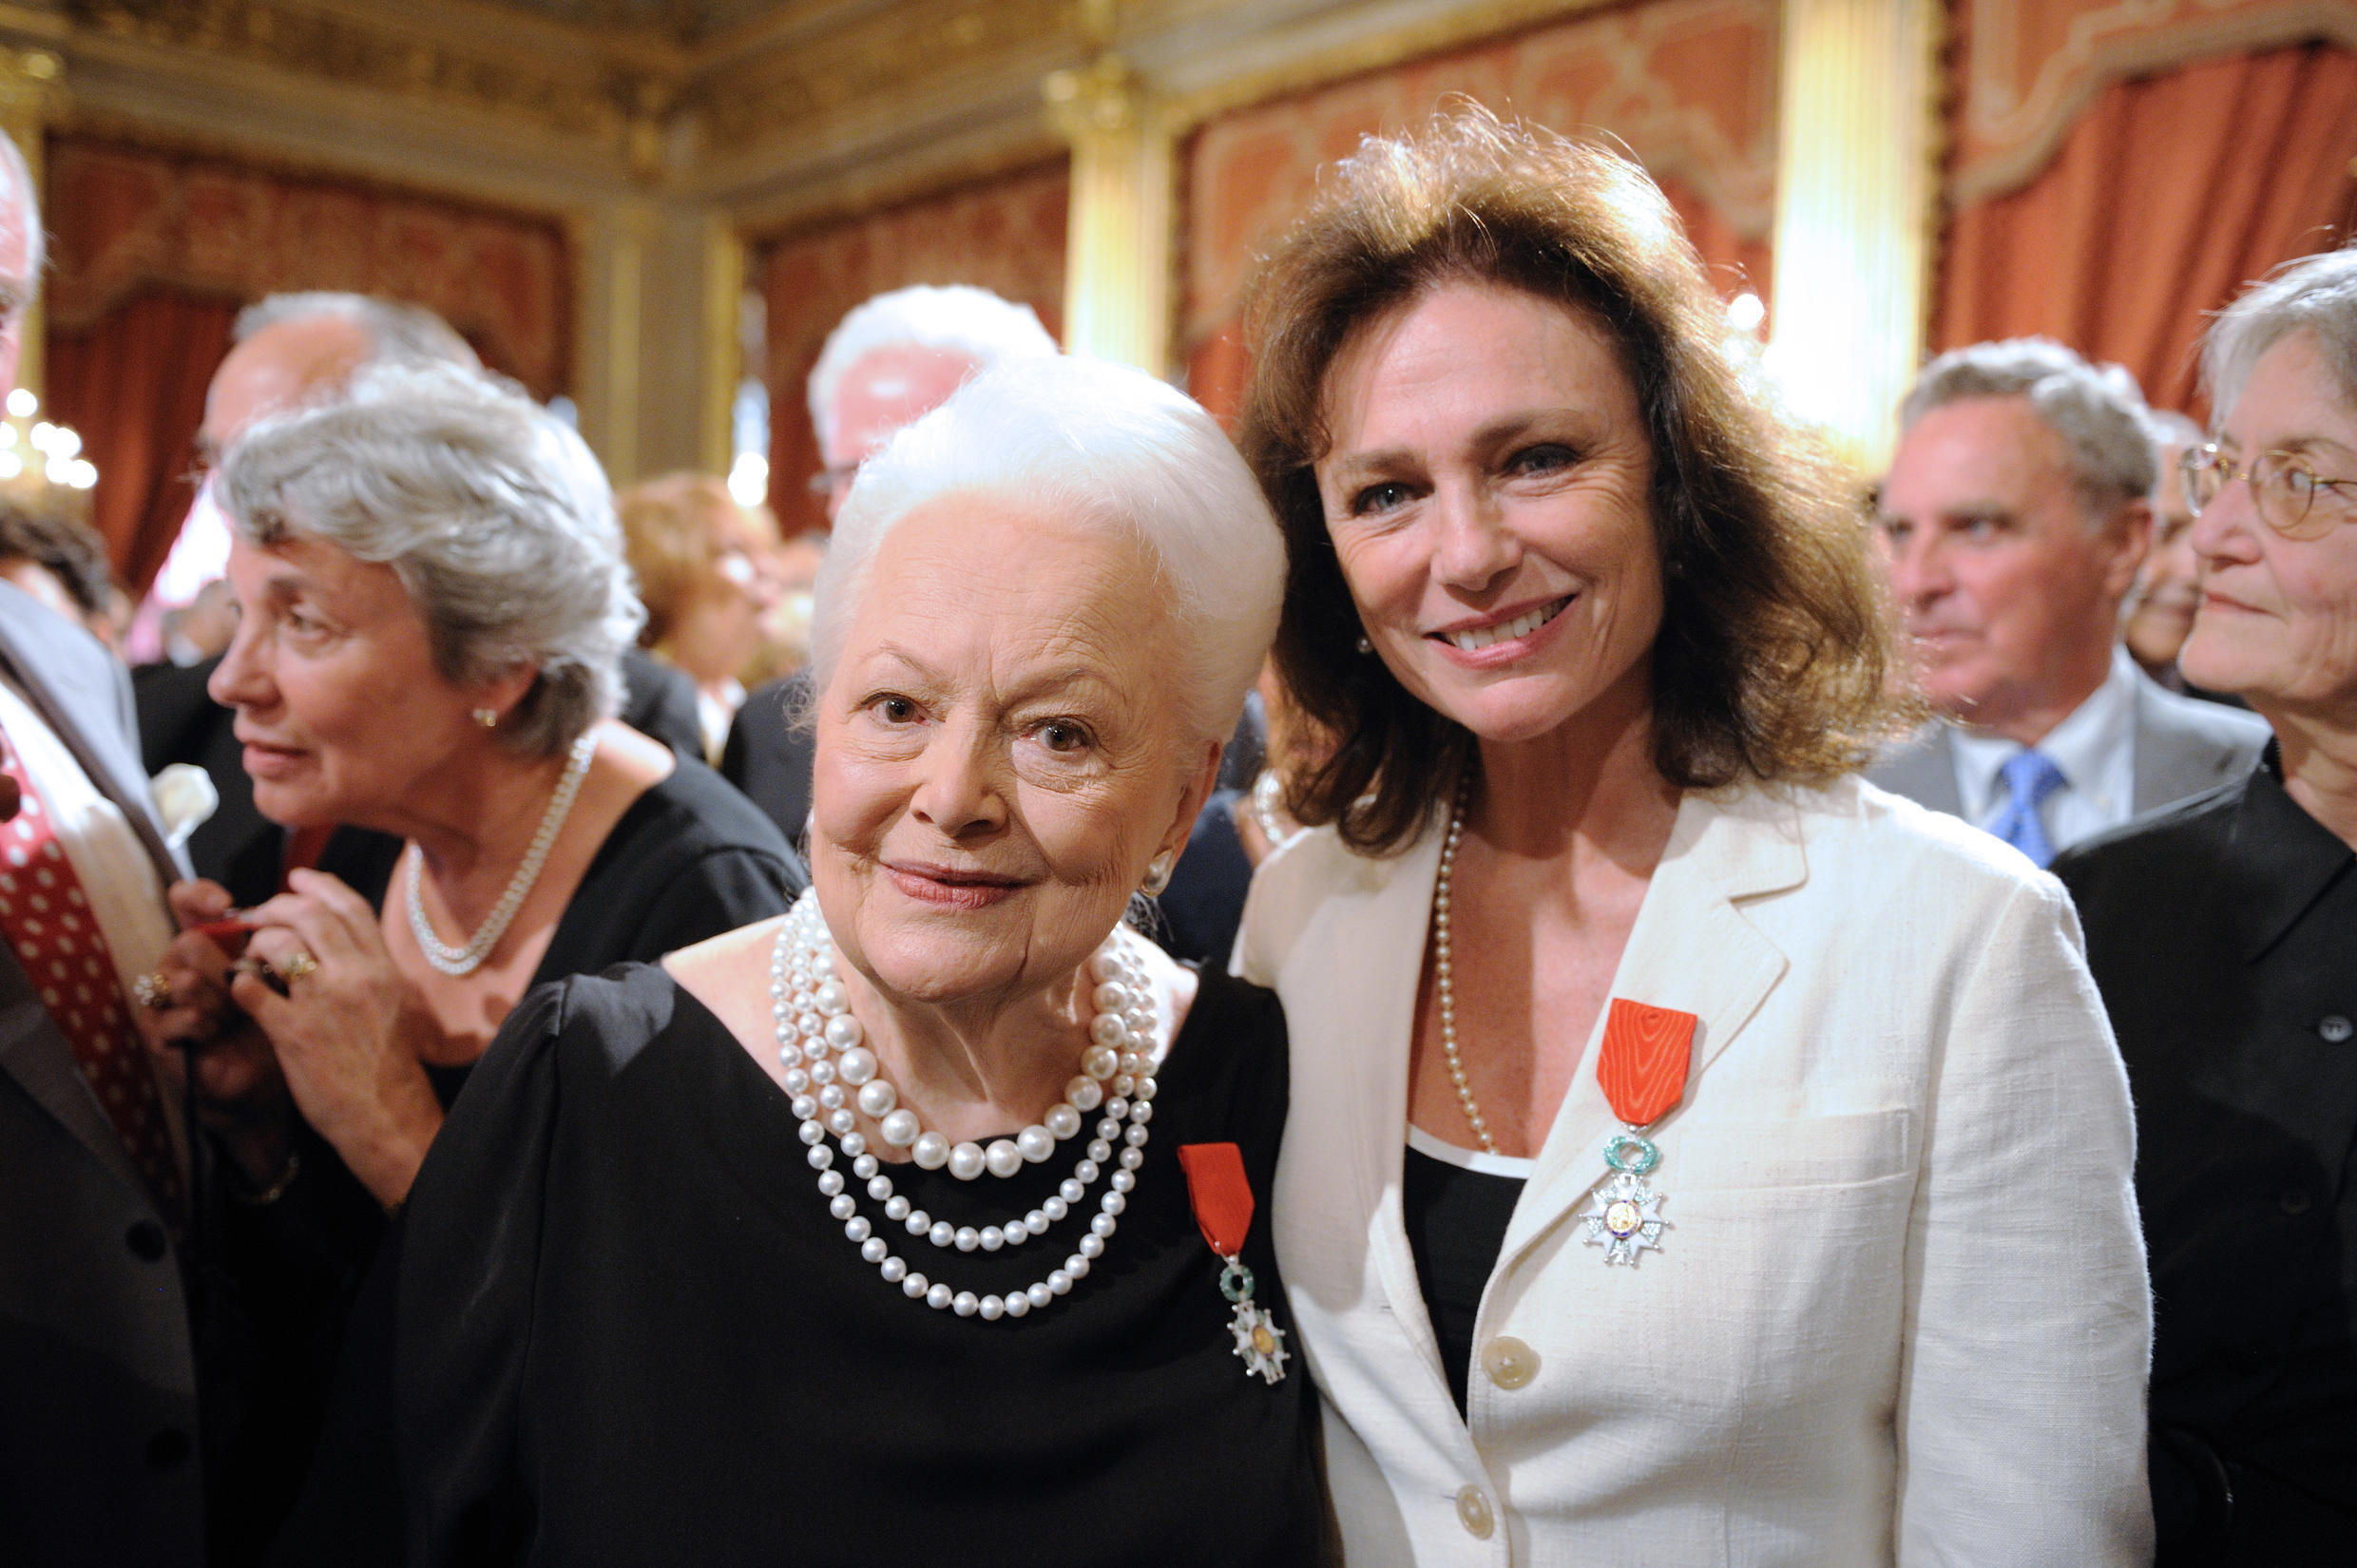 Olivia de Havilland and fellow actress Jacqueline Bisset receive their Chevalier of the Legion of Honour from president Nicolas Sarkozy at the Elysée Palace on 9 September 2010.